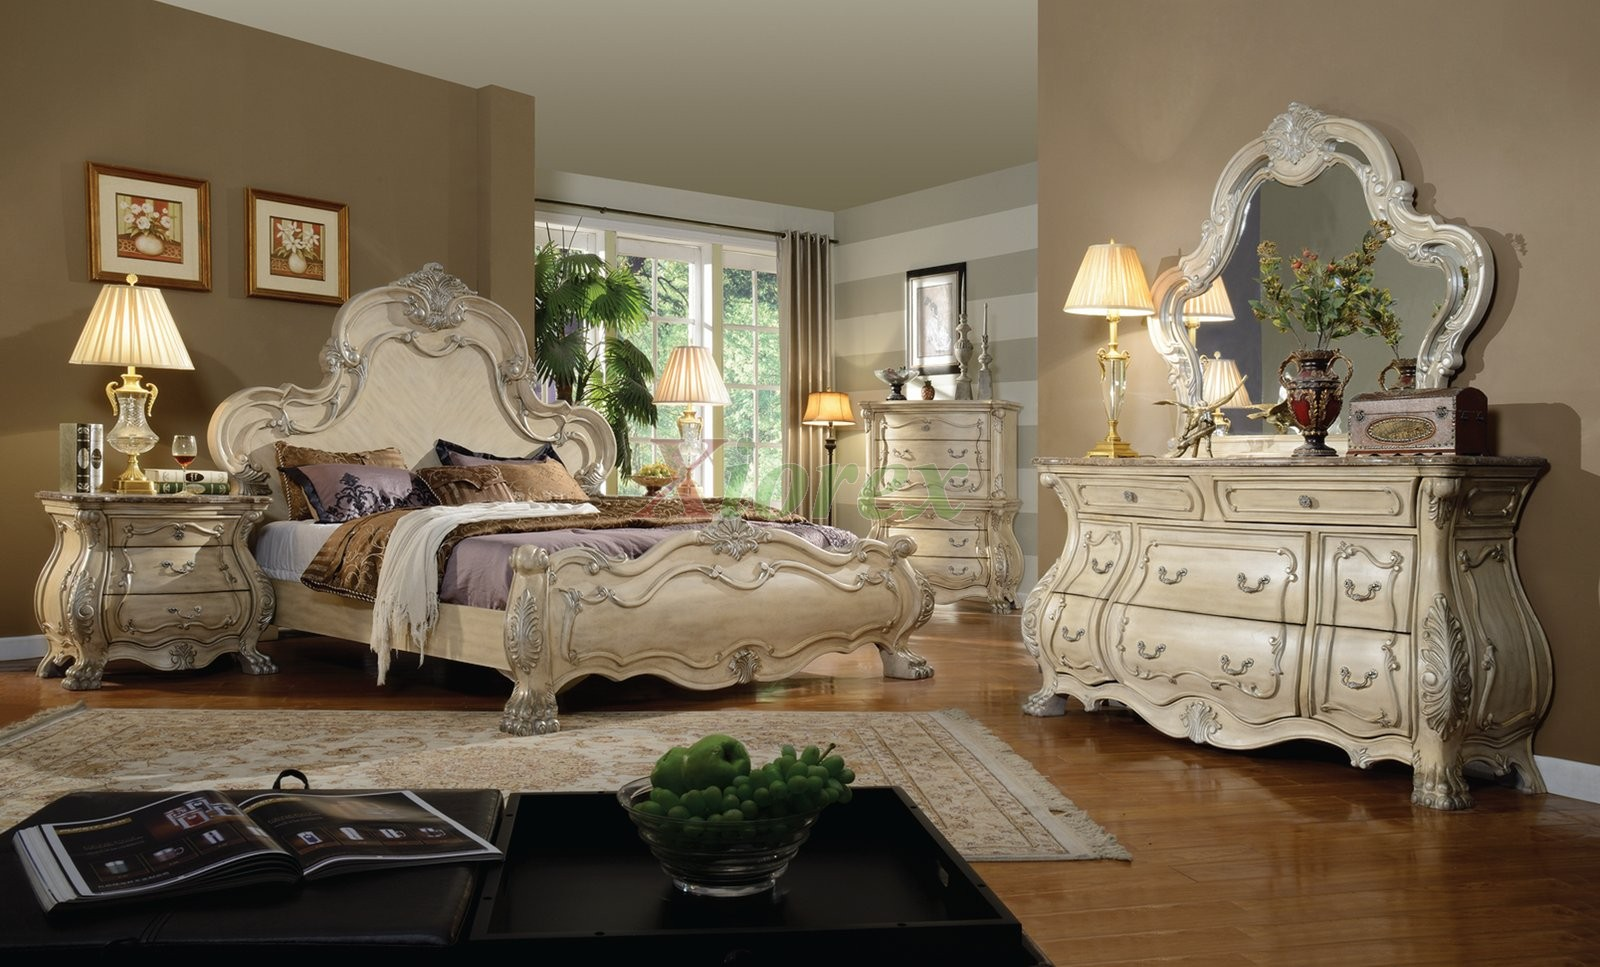 Bedroom Furniture Set  With Craftede Dresser Chest And